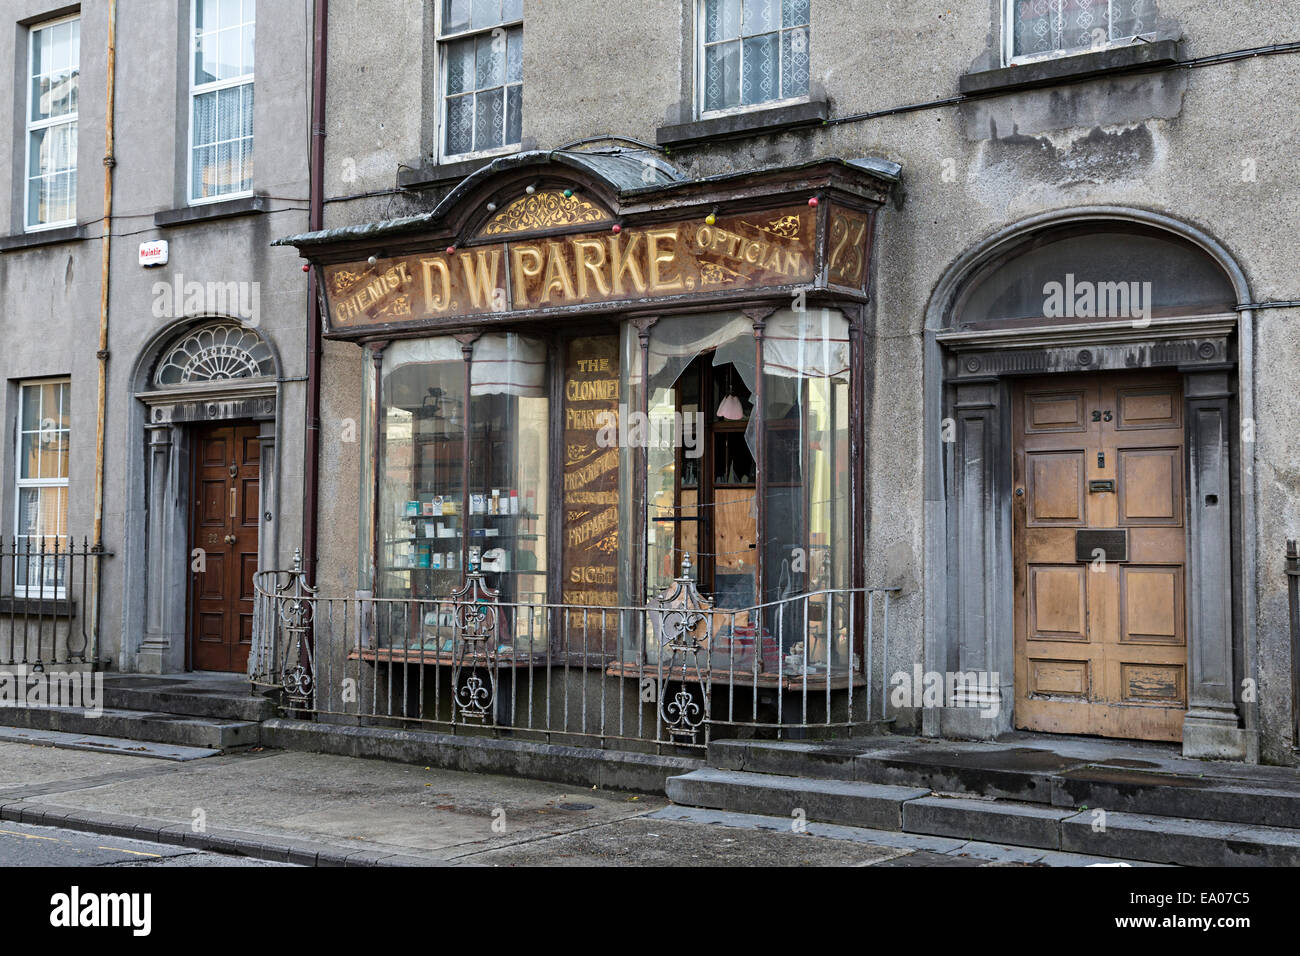 Old chemist and optician shop now closed in street in Clonmel, Ireland - Stock Image